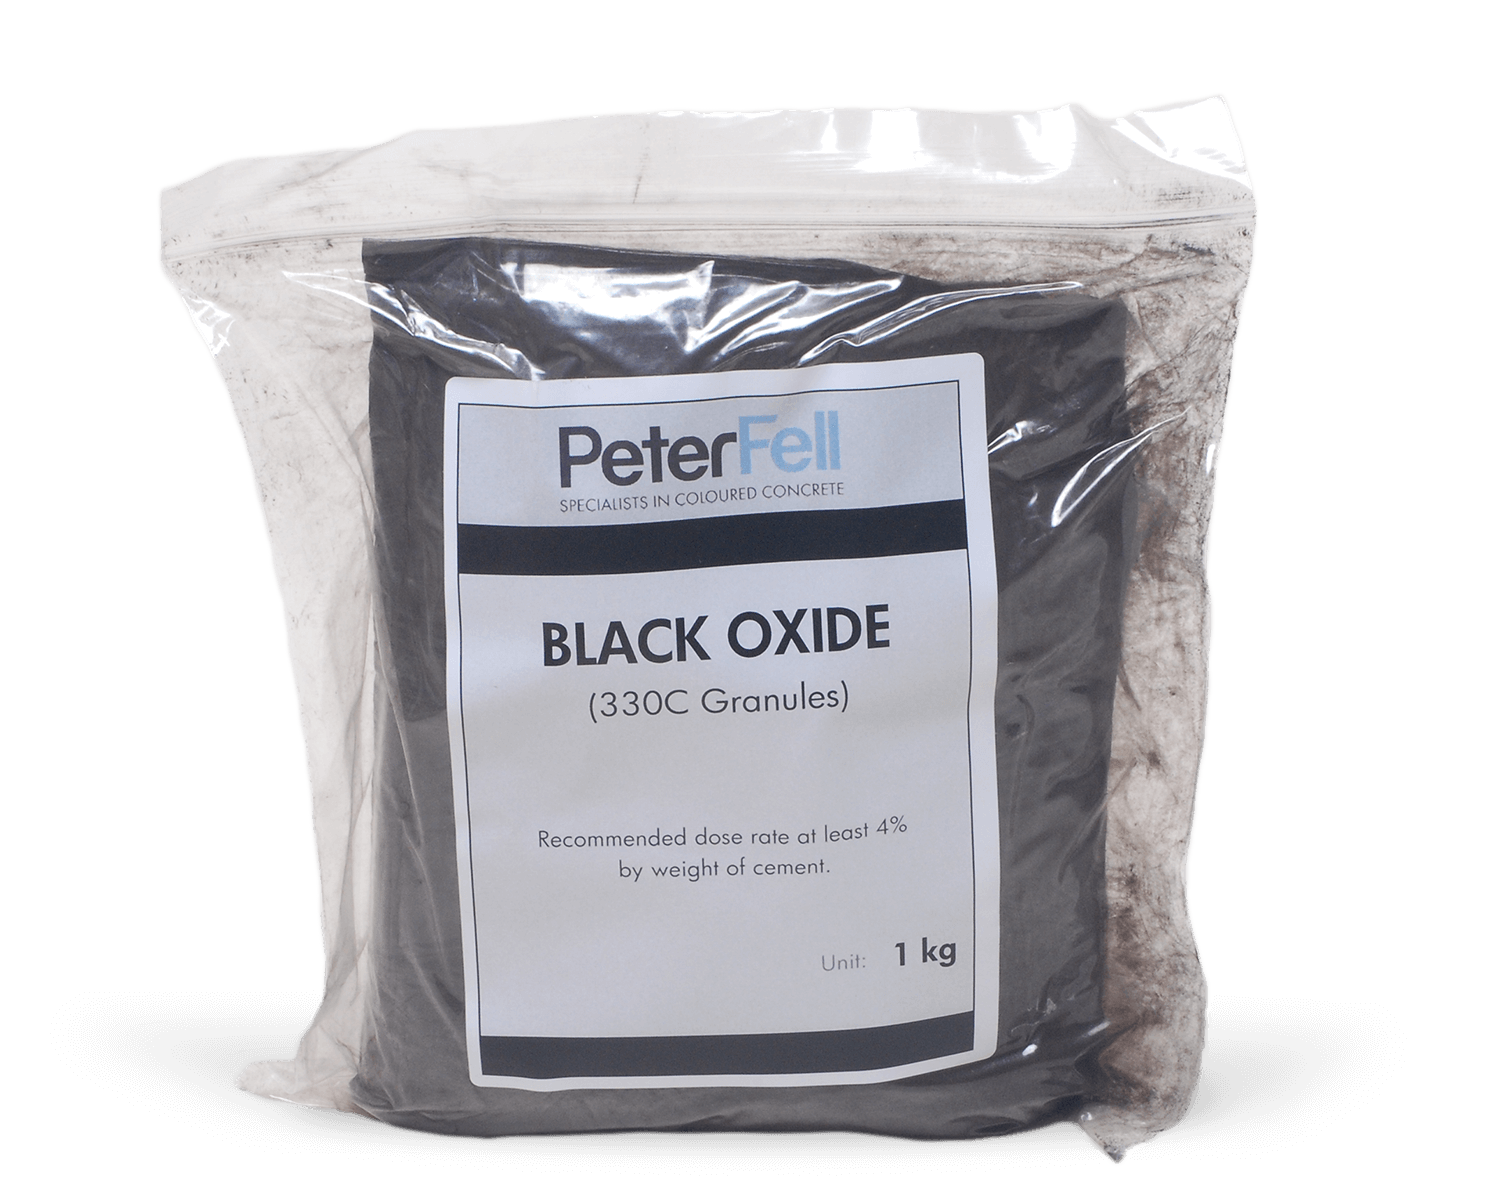 Black Oxide for colouring concrete